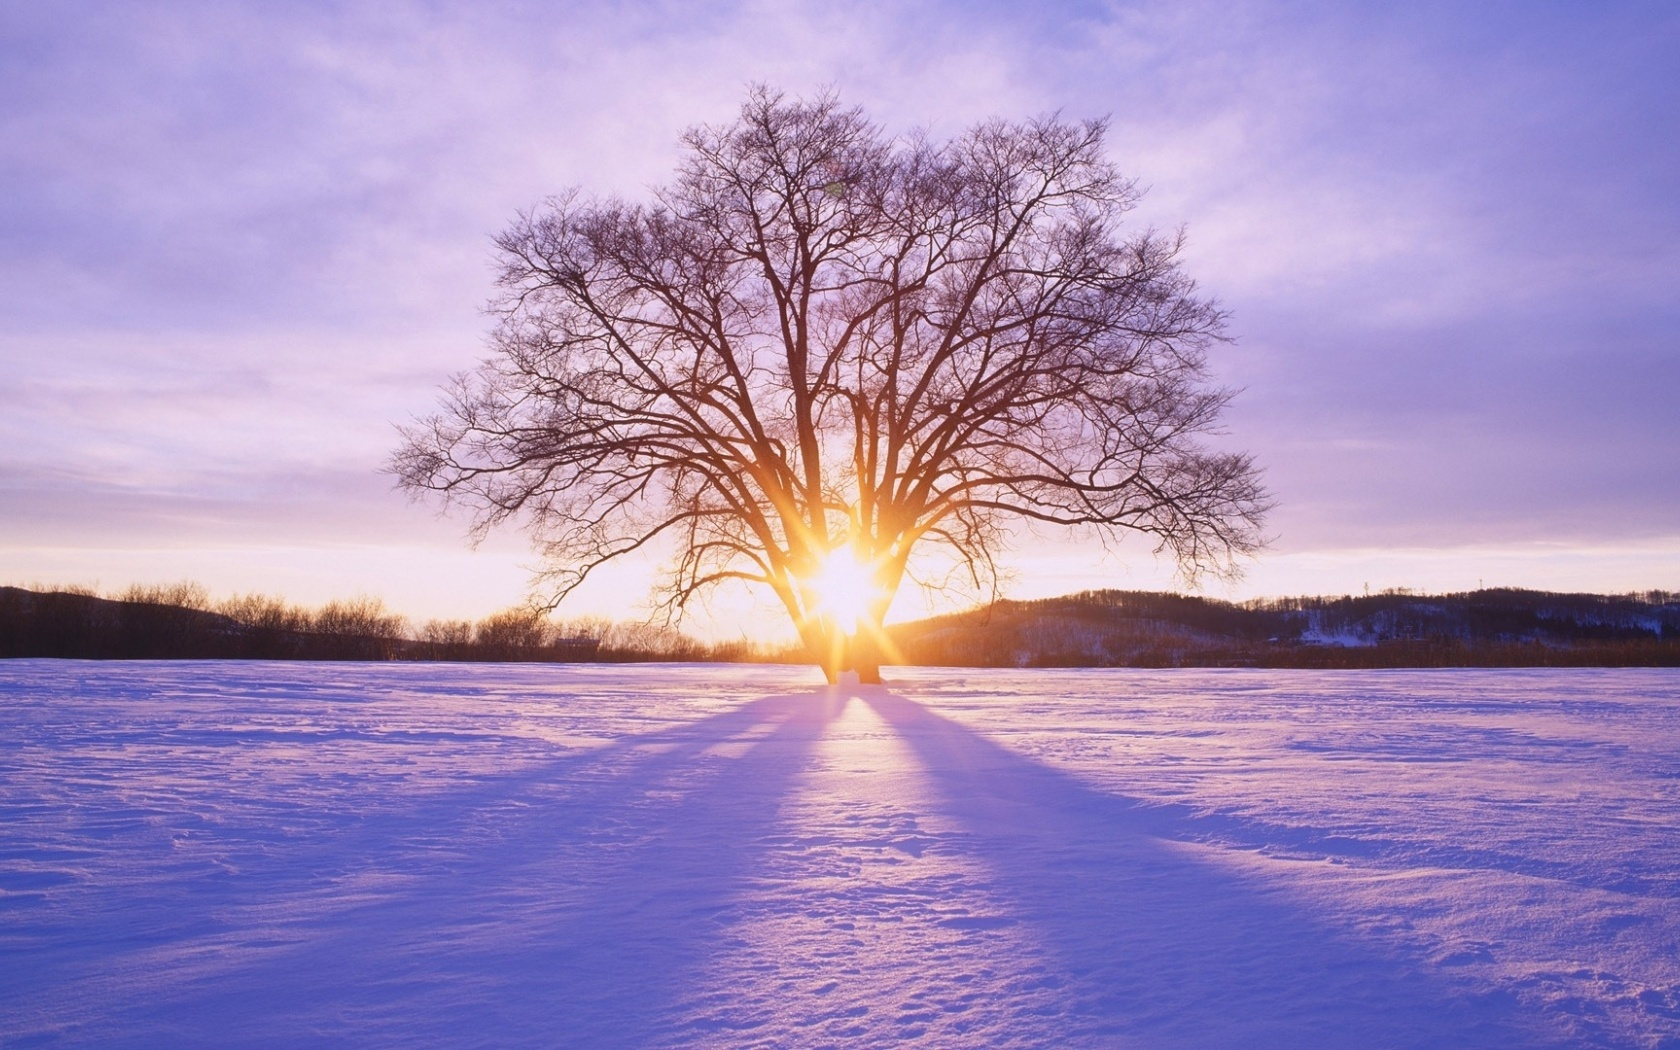 1500x500 Shiny Sun Tree & Snow Scenery